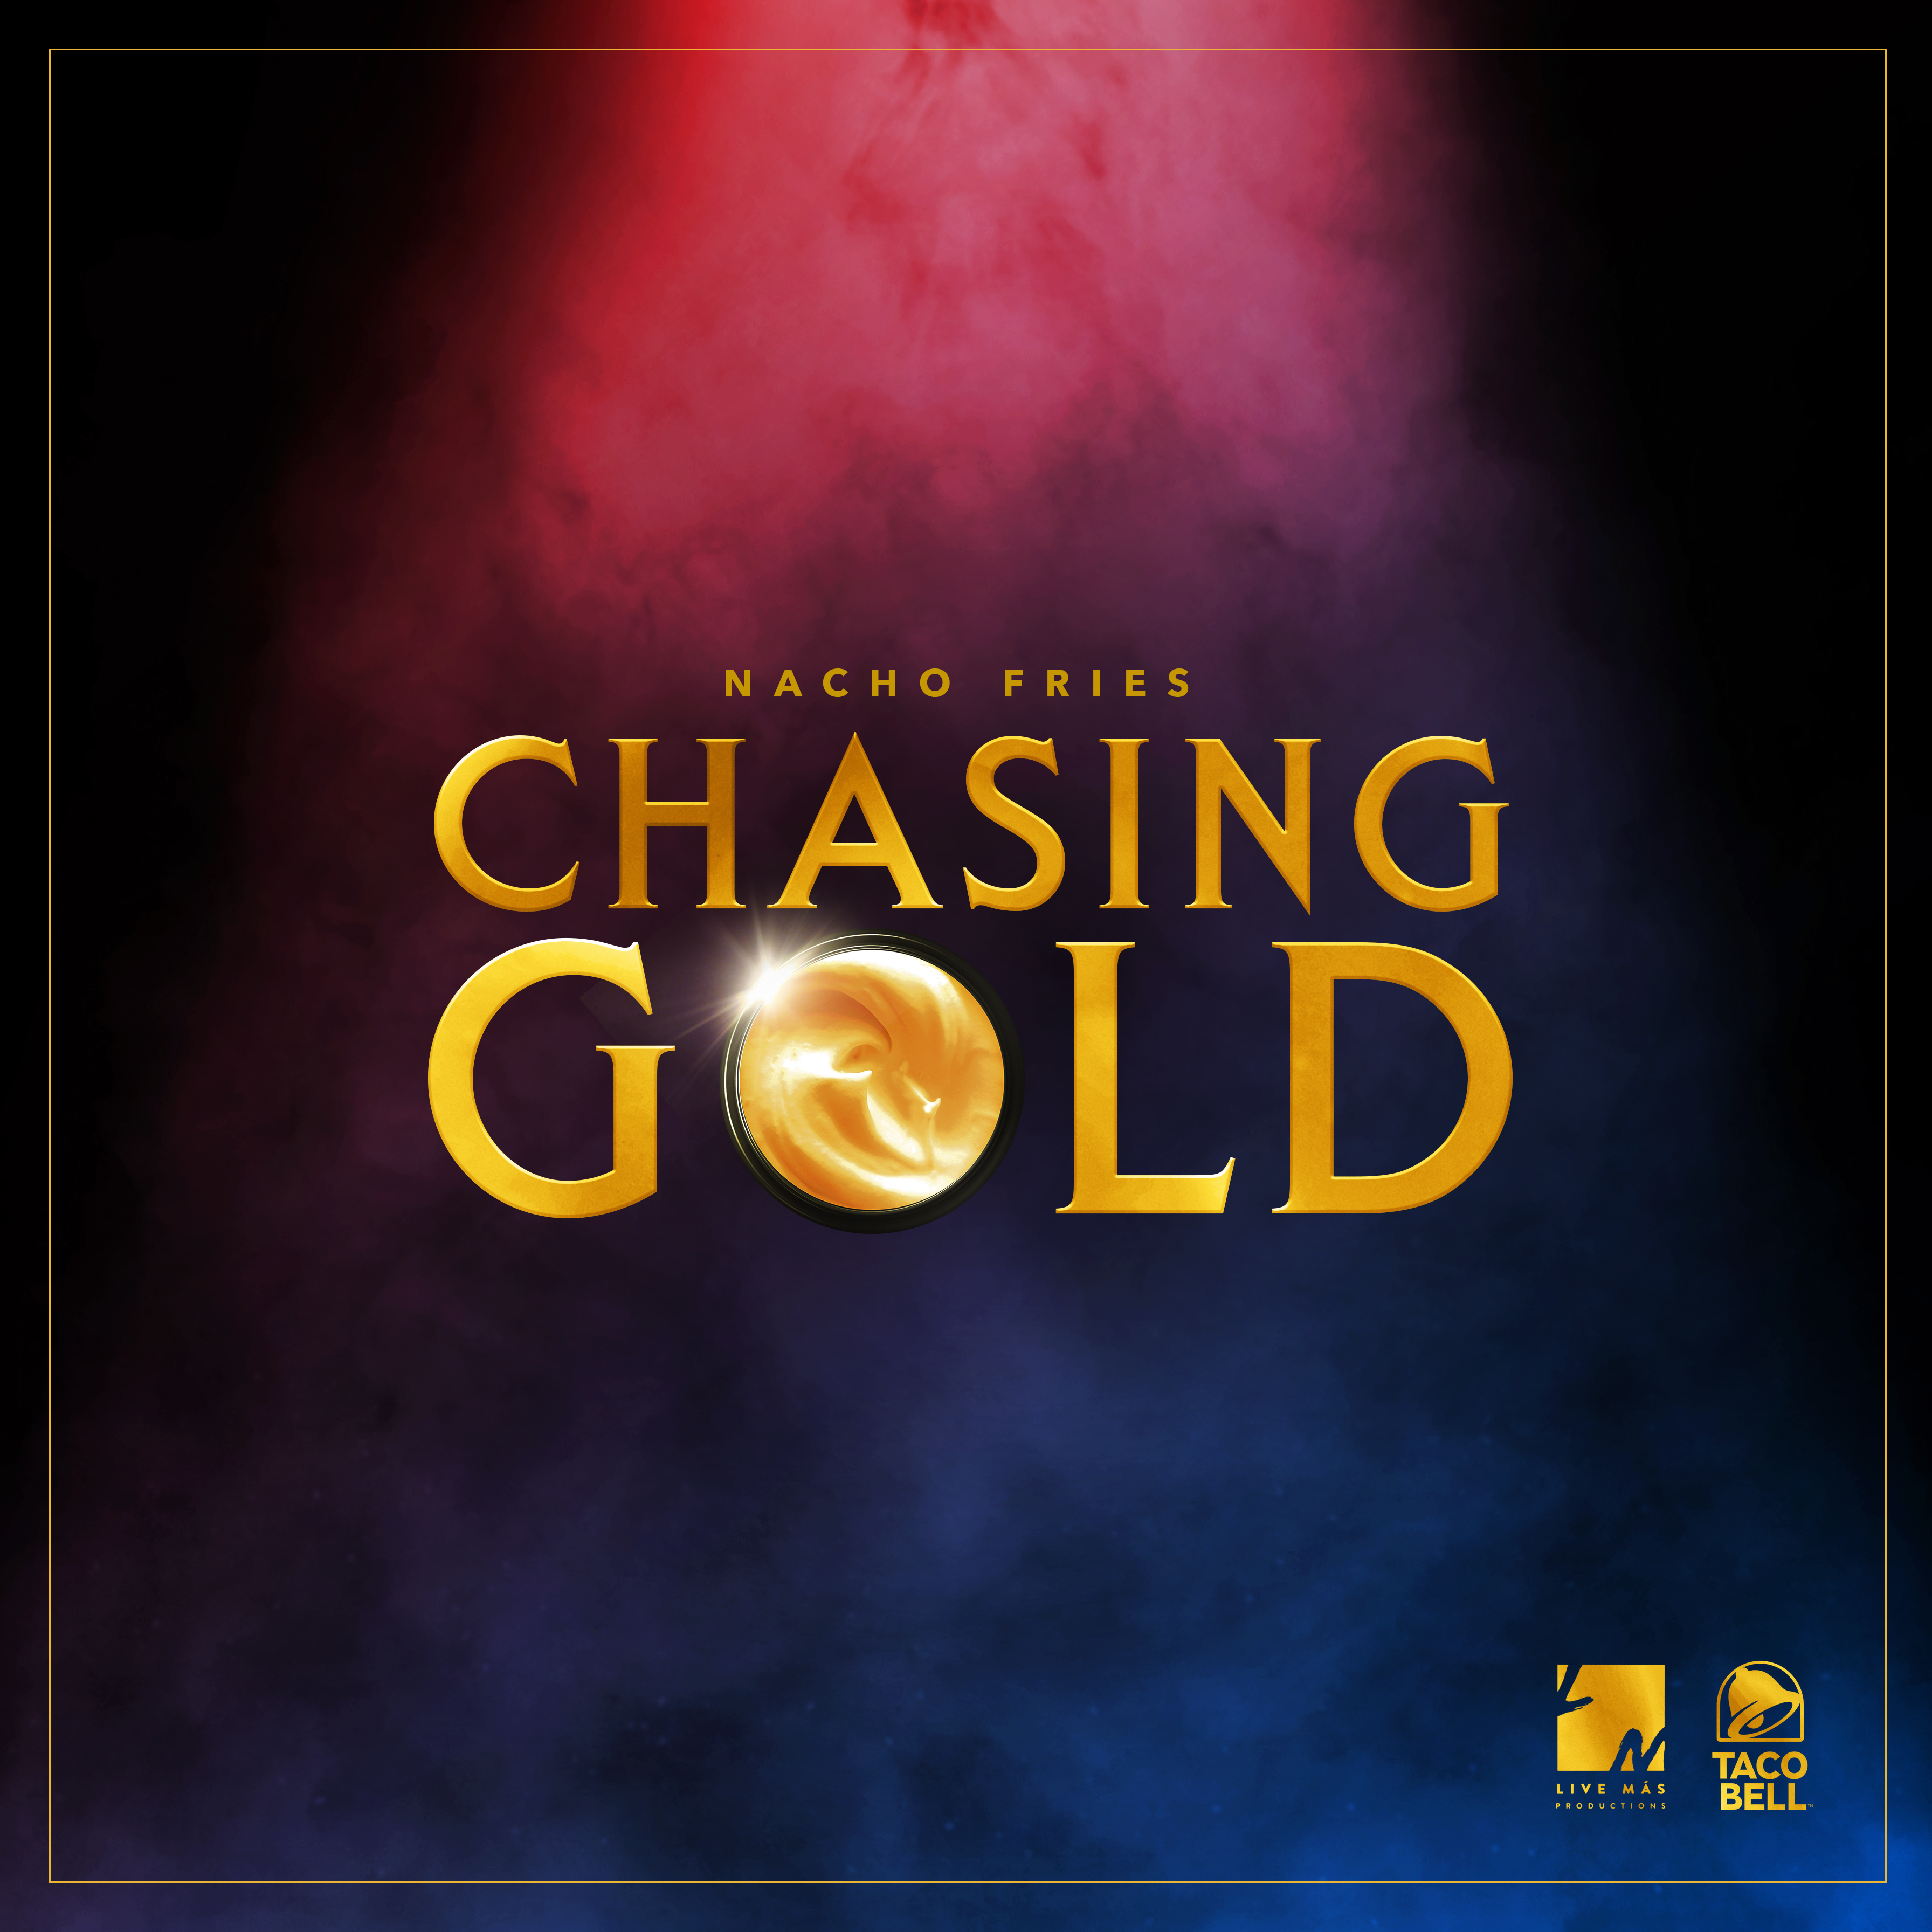 Tb chasing gold no darren cover v1 title only 2